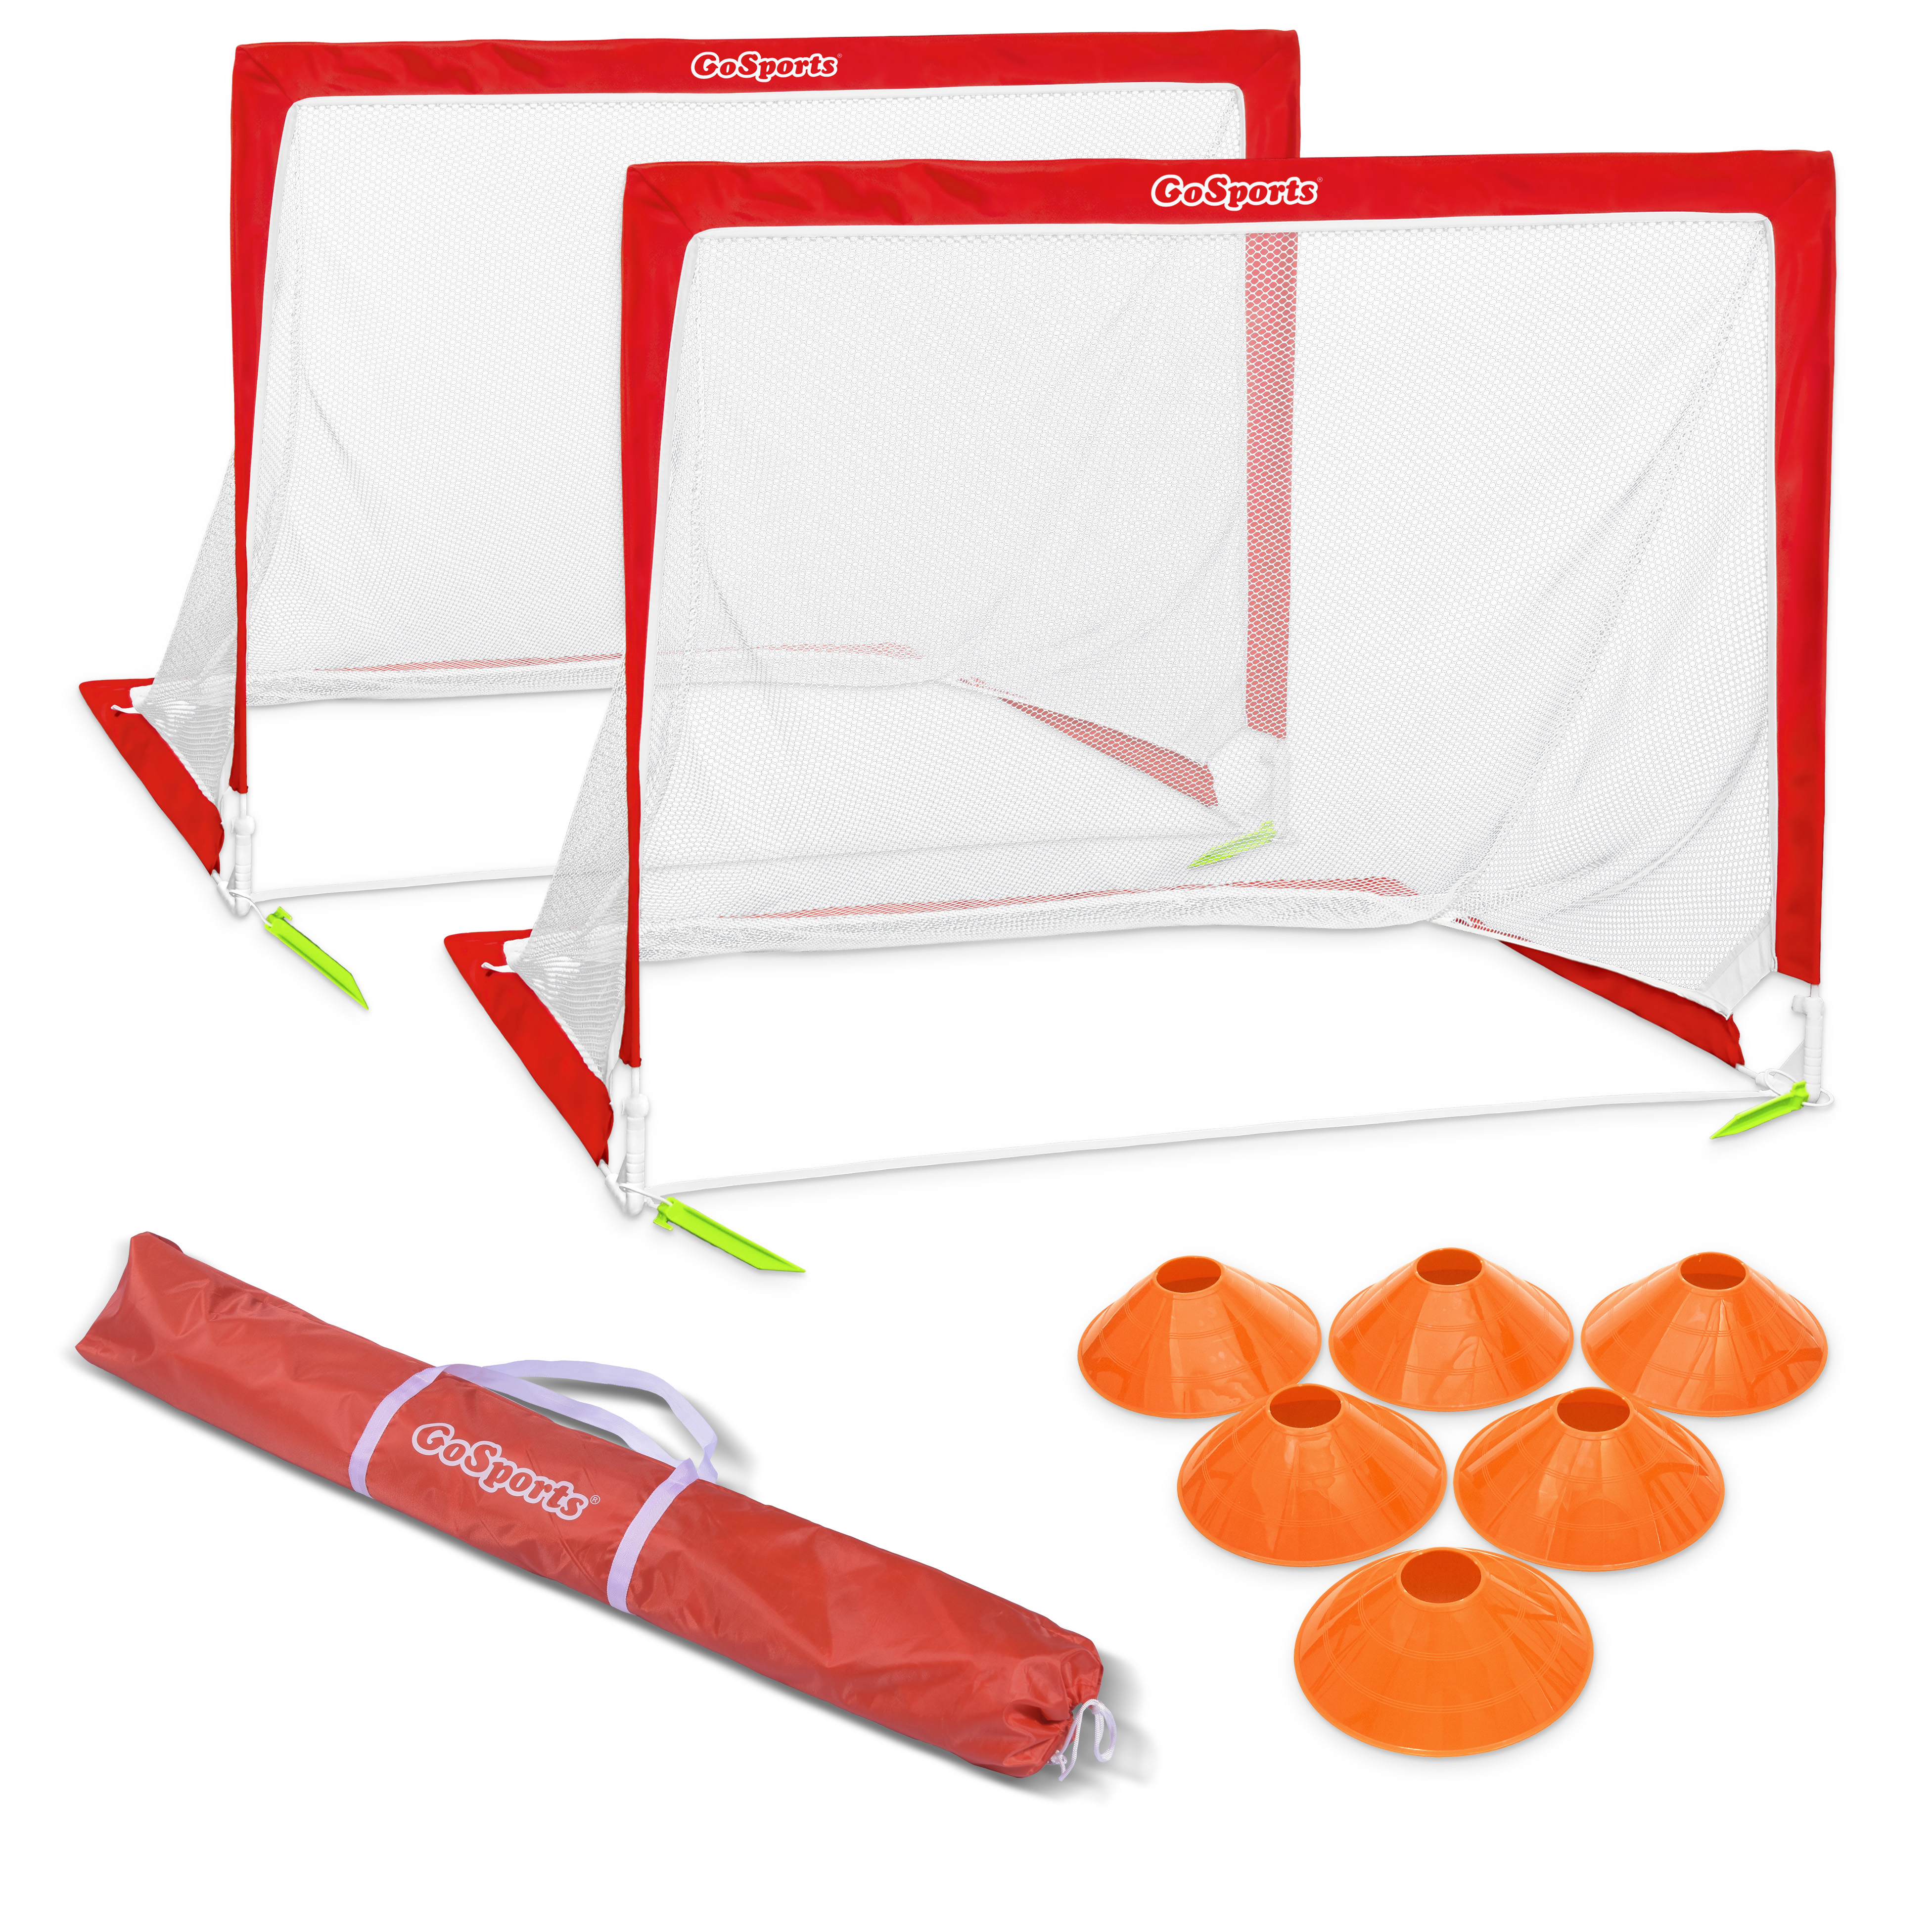 GoSports 6' Size Portable Goal Set - Includes 2 6' Goals; 6 Cones & Carrying Case; Soccer; Regulation